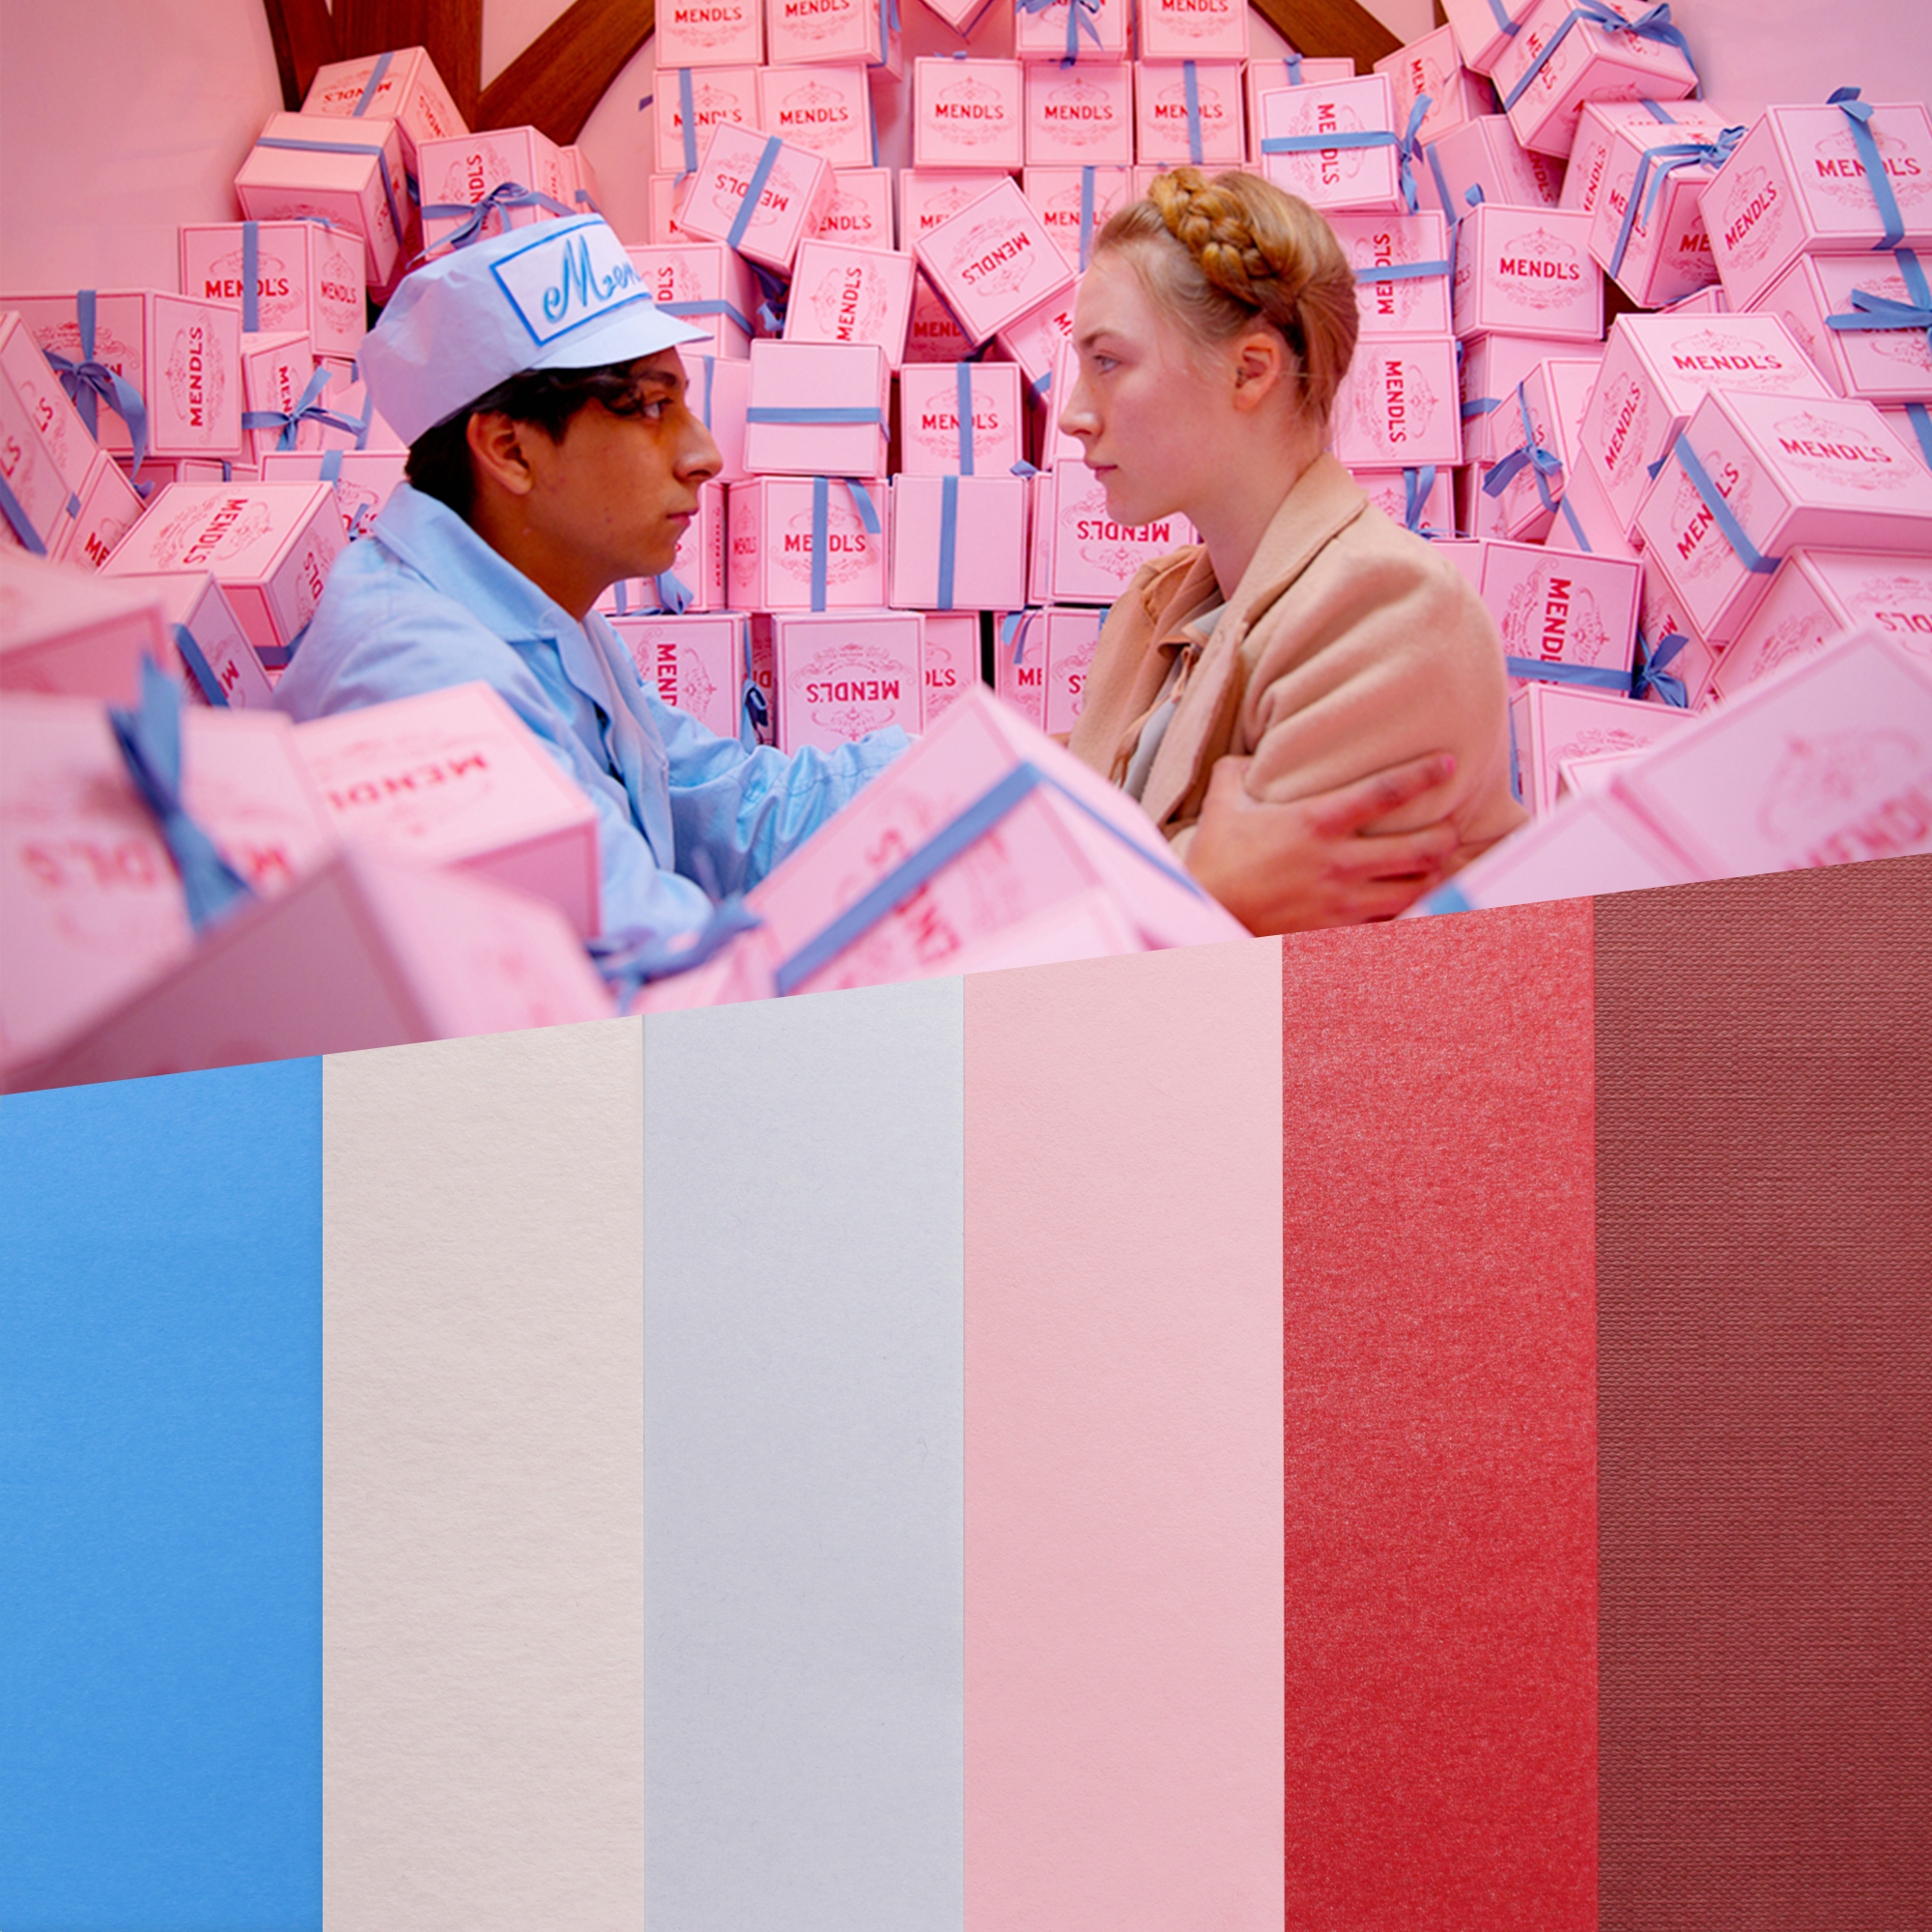 design papers collections inspired by an iconic movie scene - the grand budapest hotel